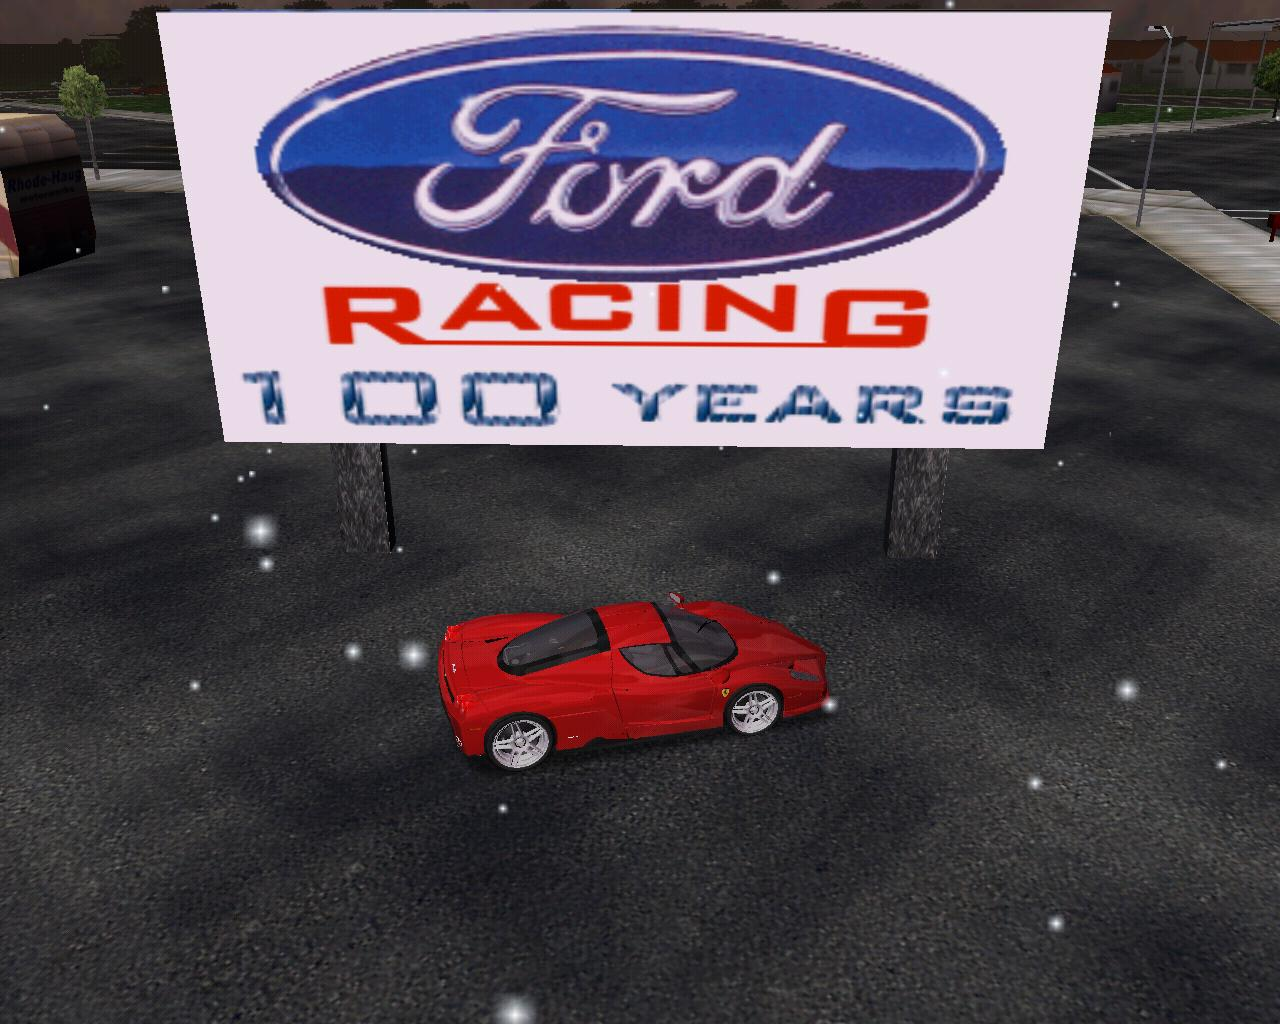 Ford Racing, 100 years, whats the Ferrari doing?